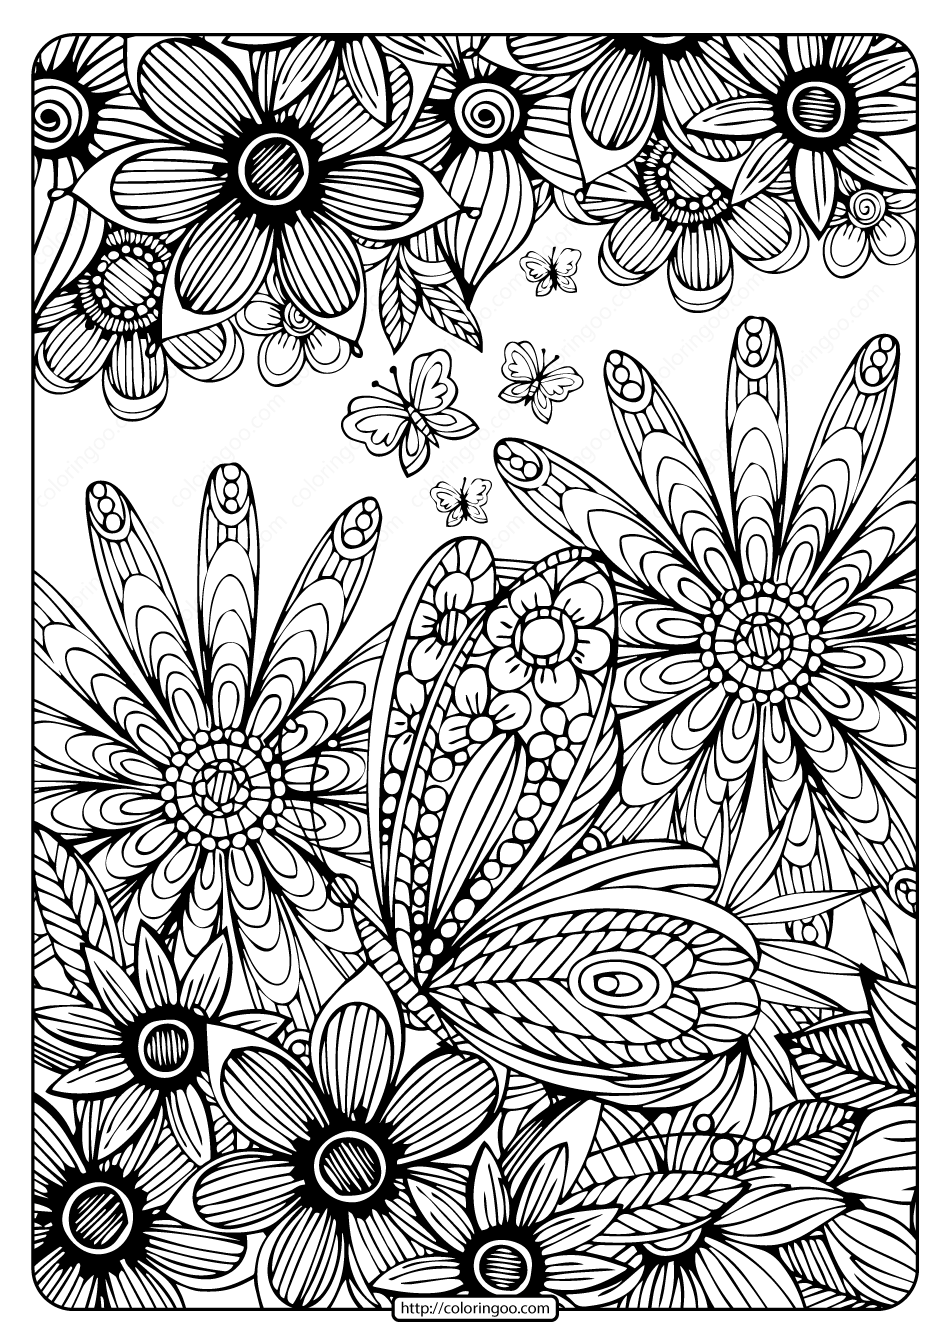 Printable Coloring Book Pages For Adults 004 High Quality Free Printable Coloring Drawing Printable Coloring Book Coloring Book Pages Abstract Coloring Pages